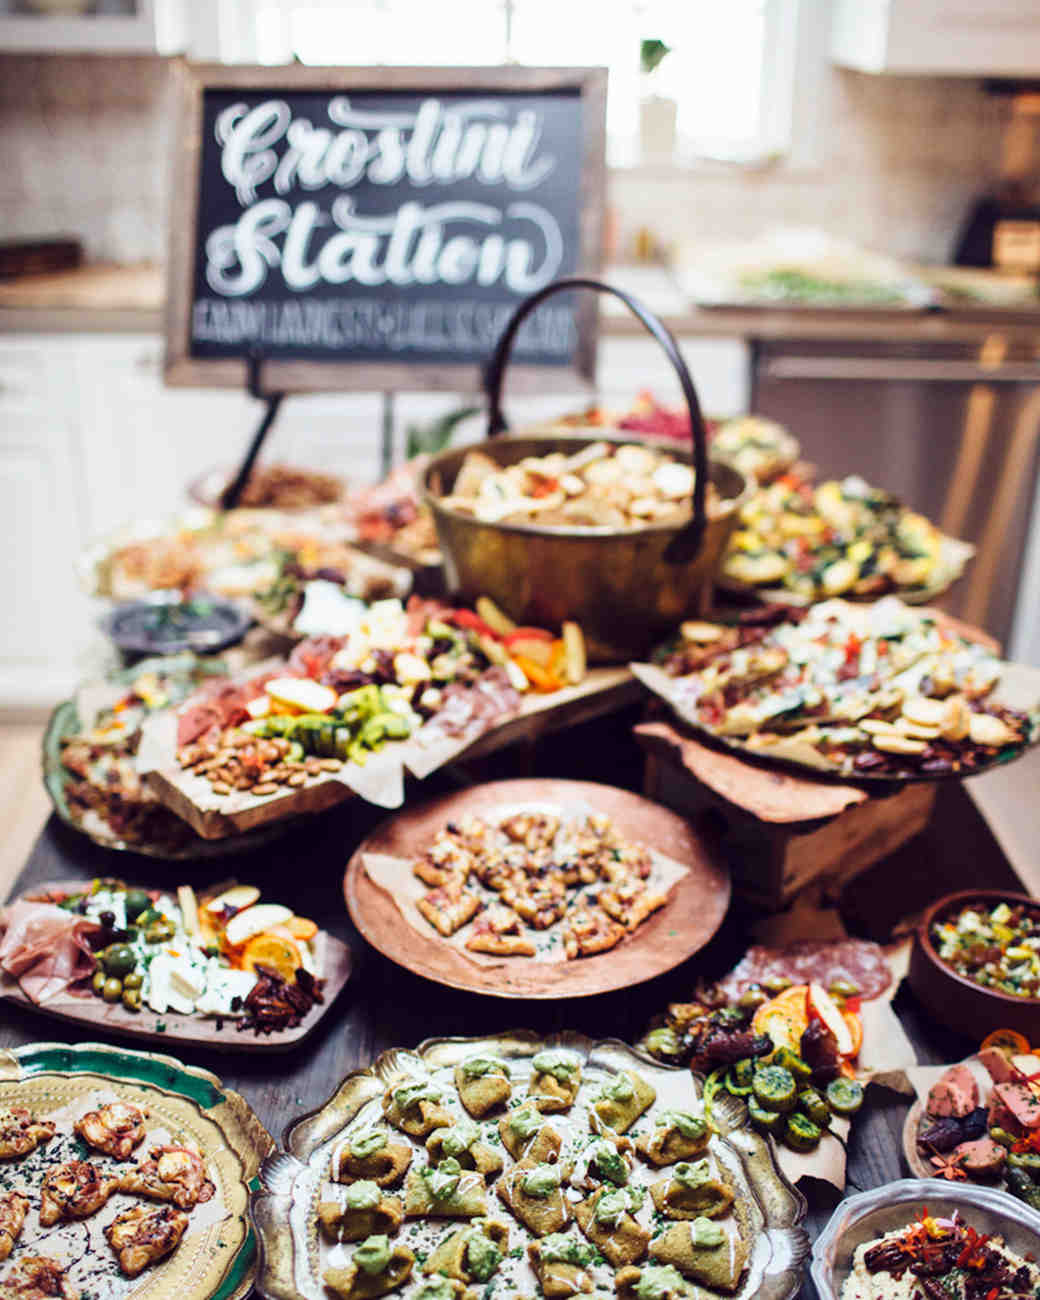 25 unexpected wedding food ideas your guests will love martha 25 unexpected wedding food ideas your guests will love martha stewart weddings junglespirit Image collections